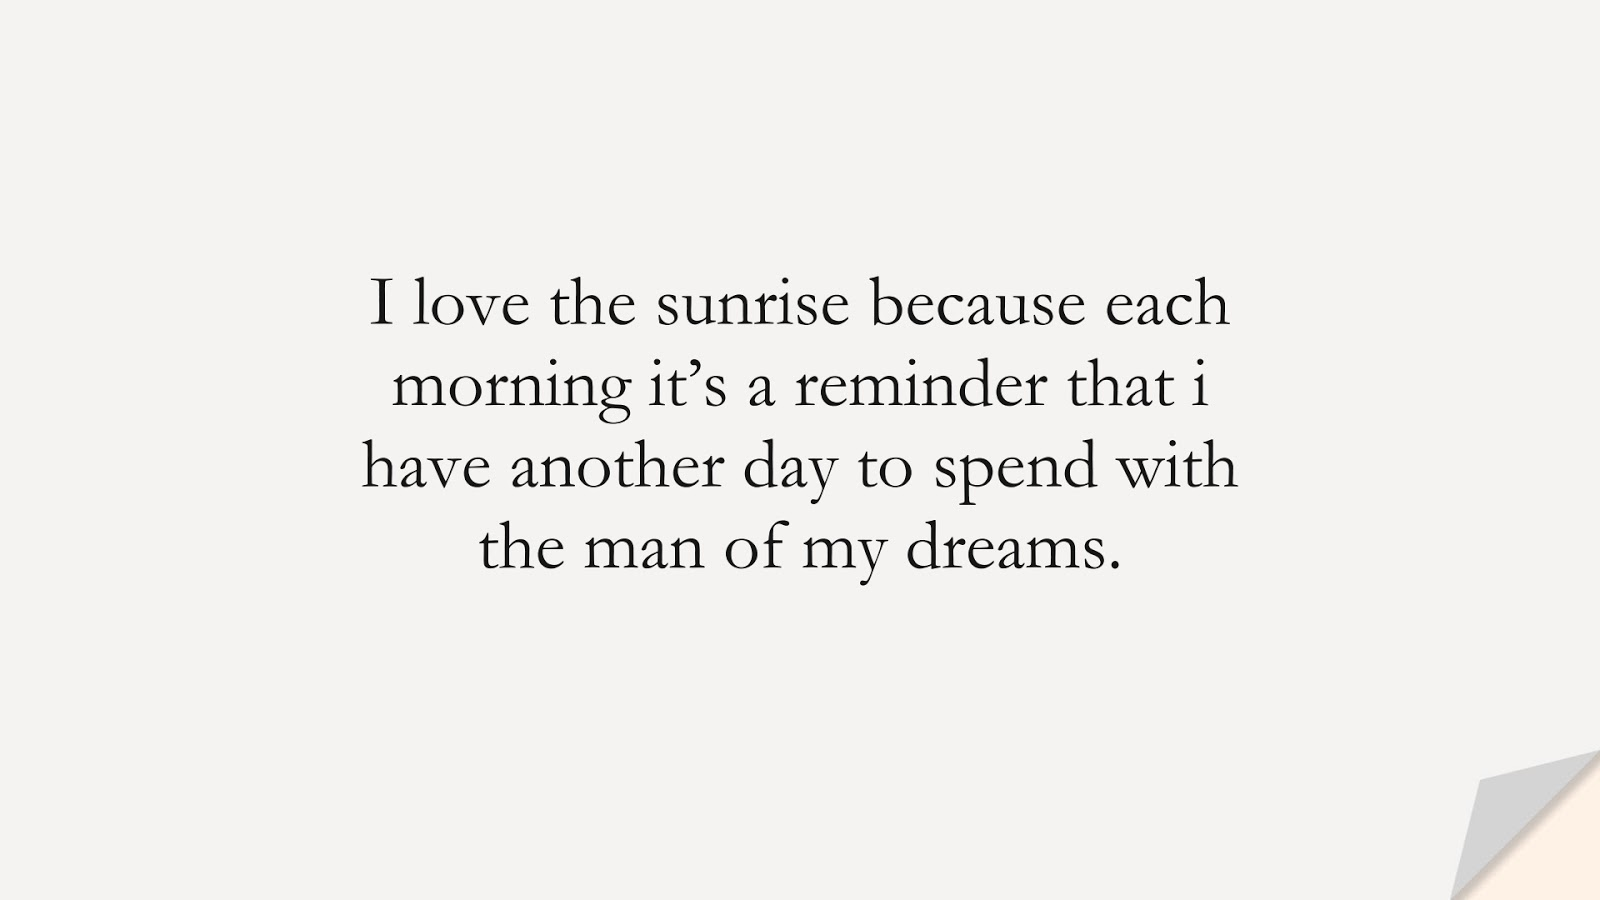 I love the sunrise because each morning it's a reminder that i have another day to spend with the man of my dreams.FALSE